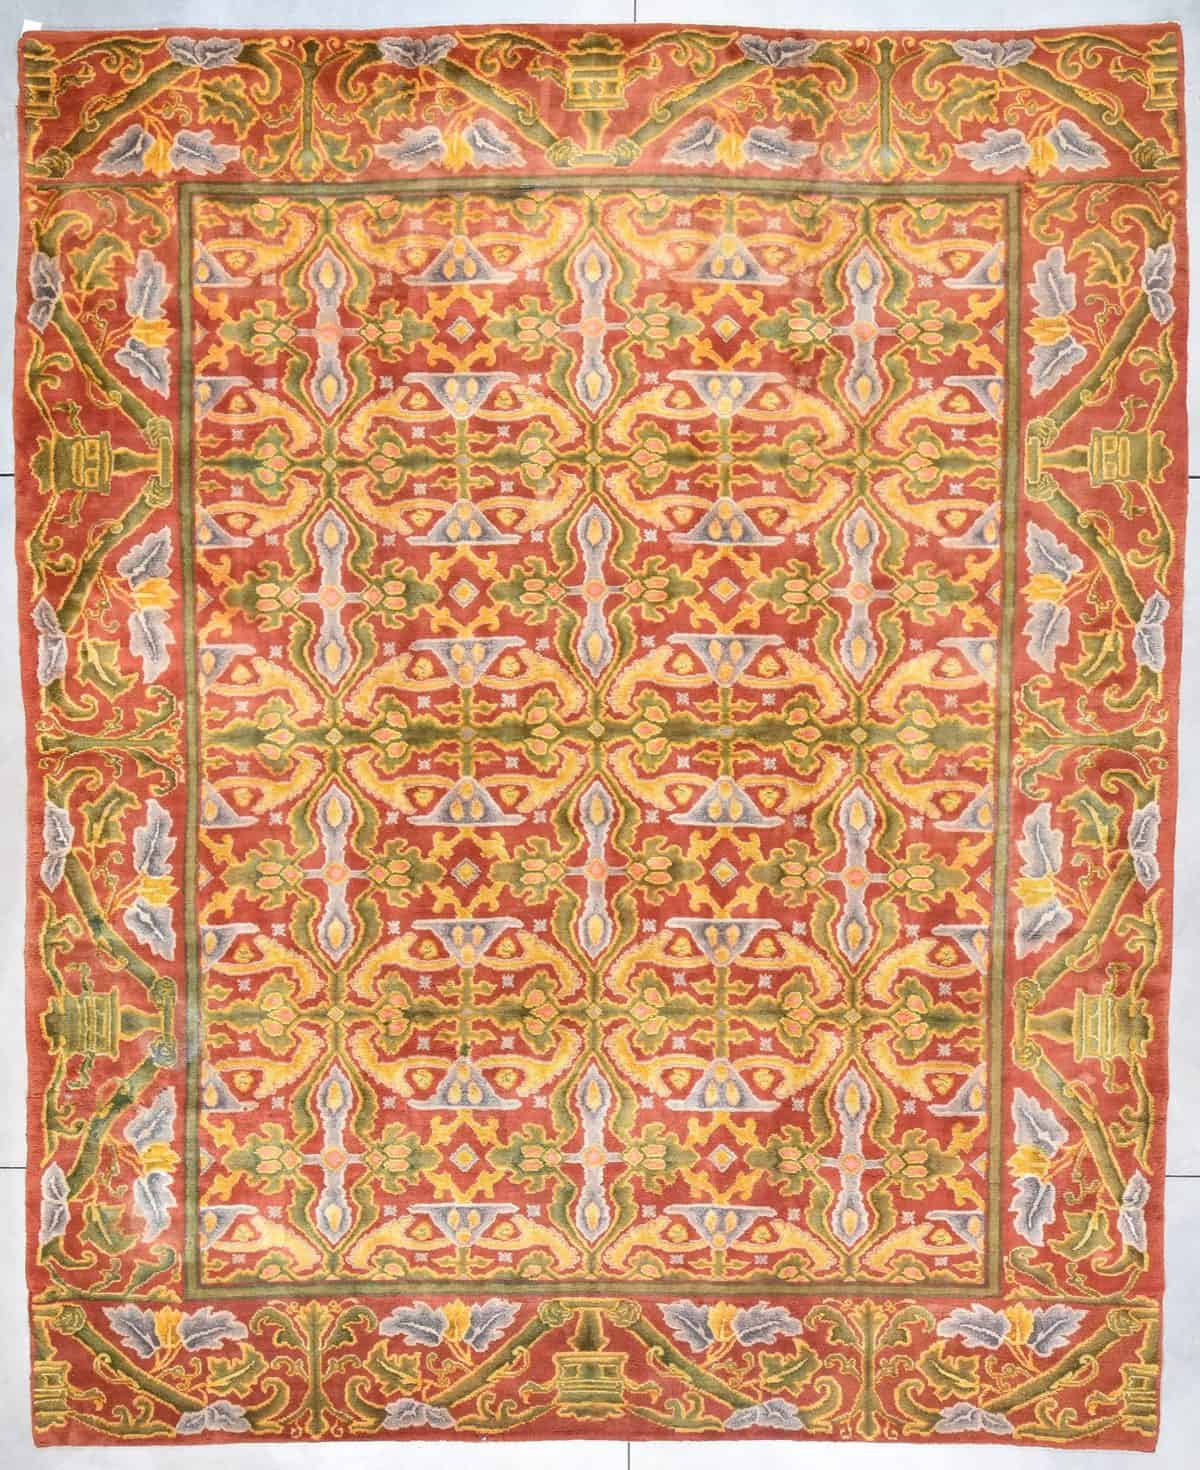 Donnegal rug oversized antique